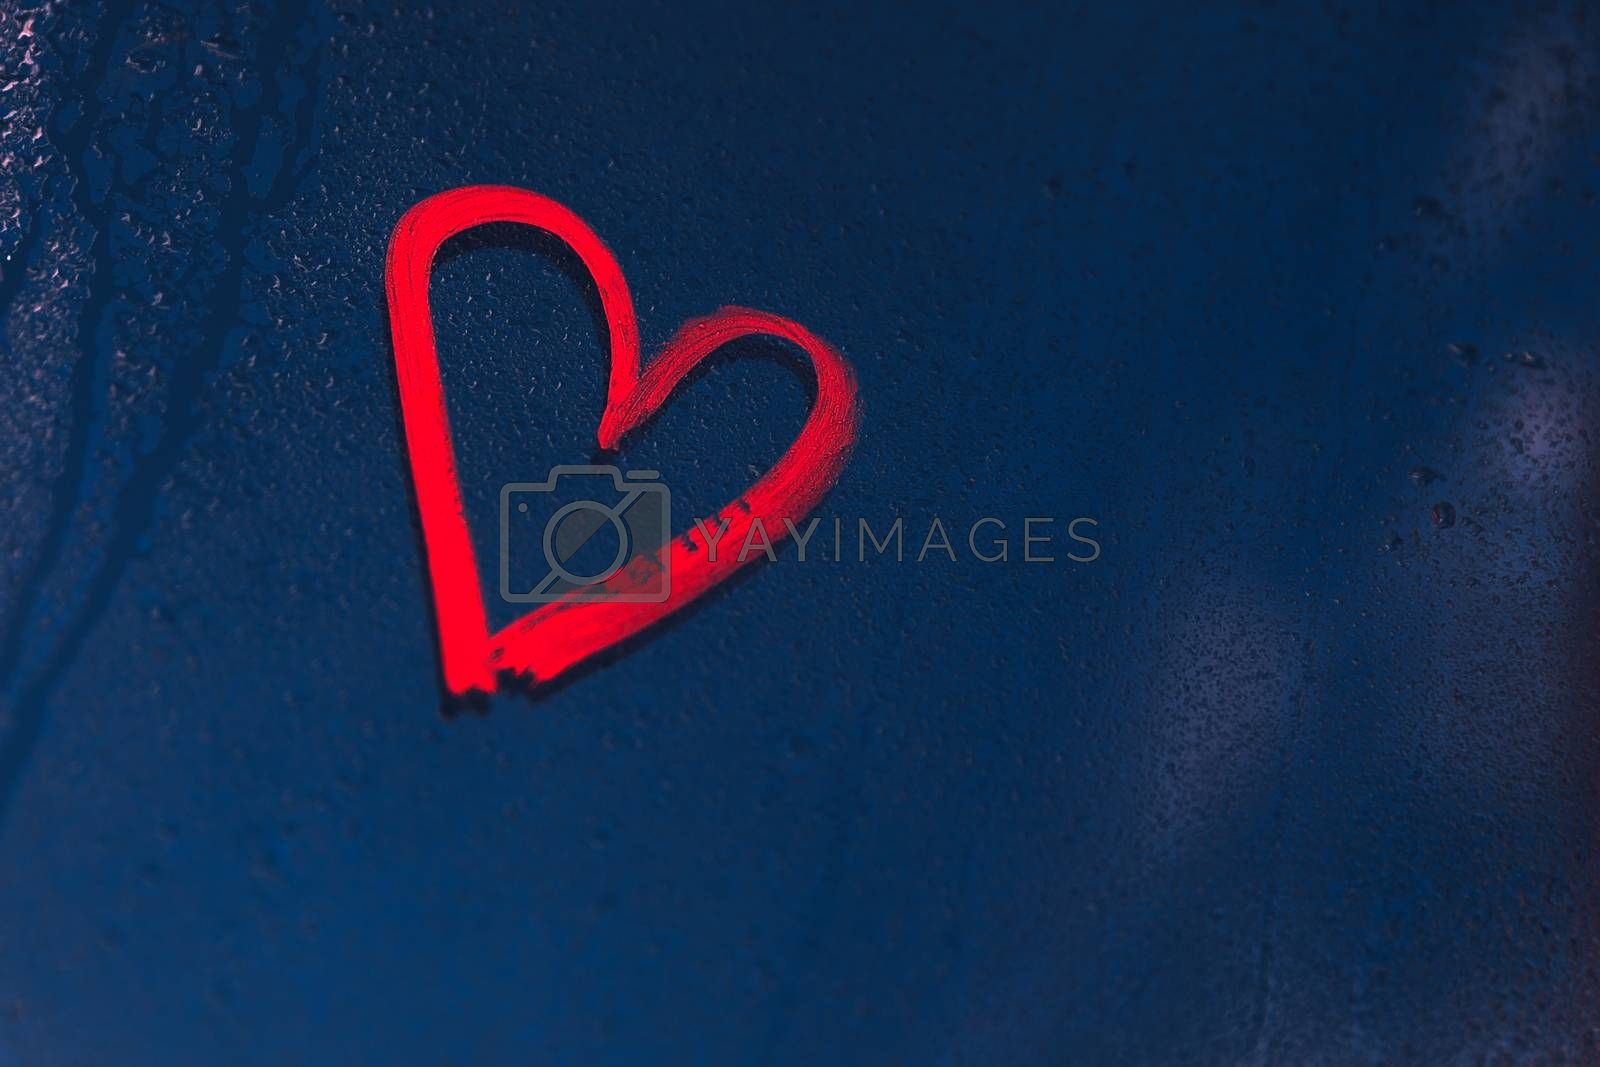 Photo of a heart drawn with red lipstick on a glass on a rainy night, expression of passion, love message on Valentines day